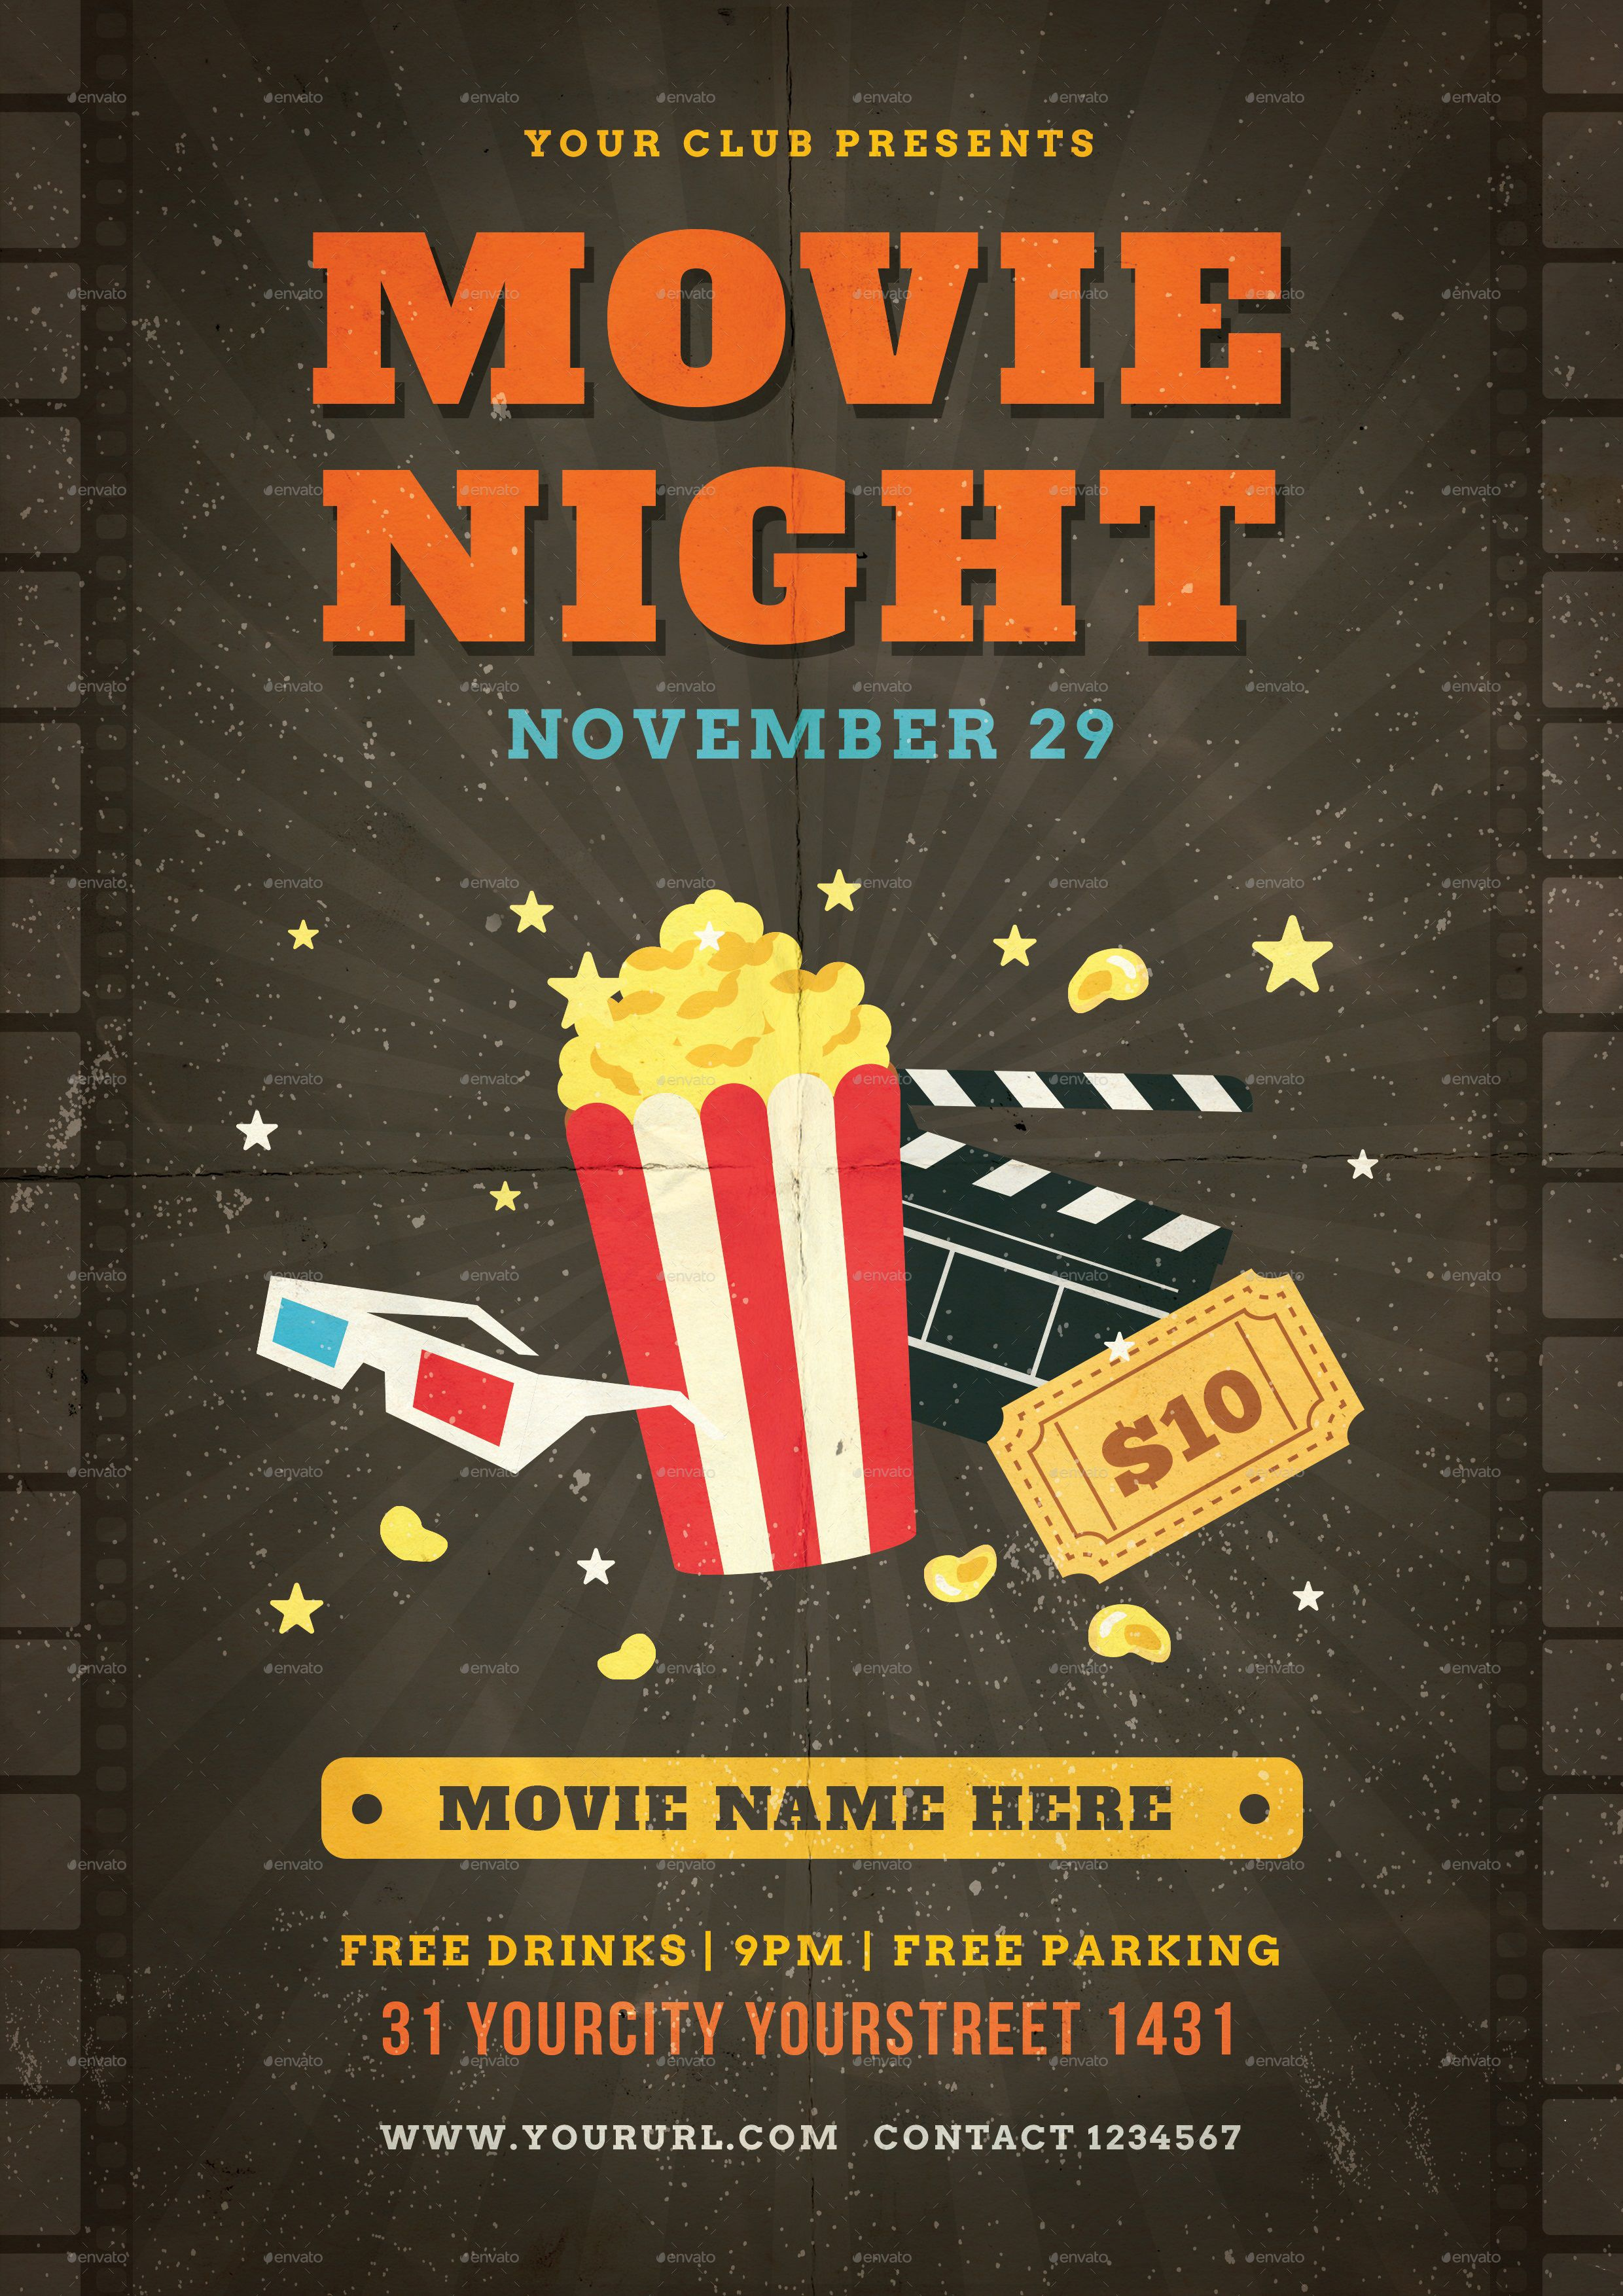 000 Remarkable Movie Night Flyer Template Highest Quality  Editable Psd FreeFull